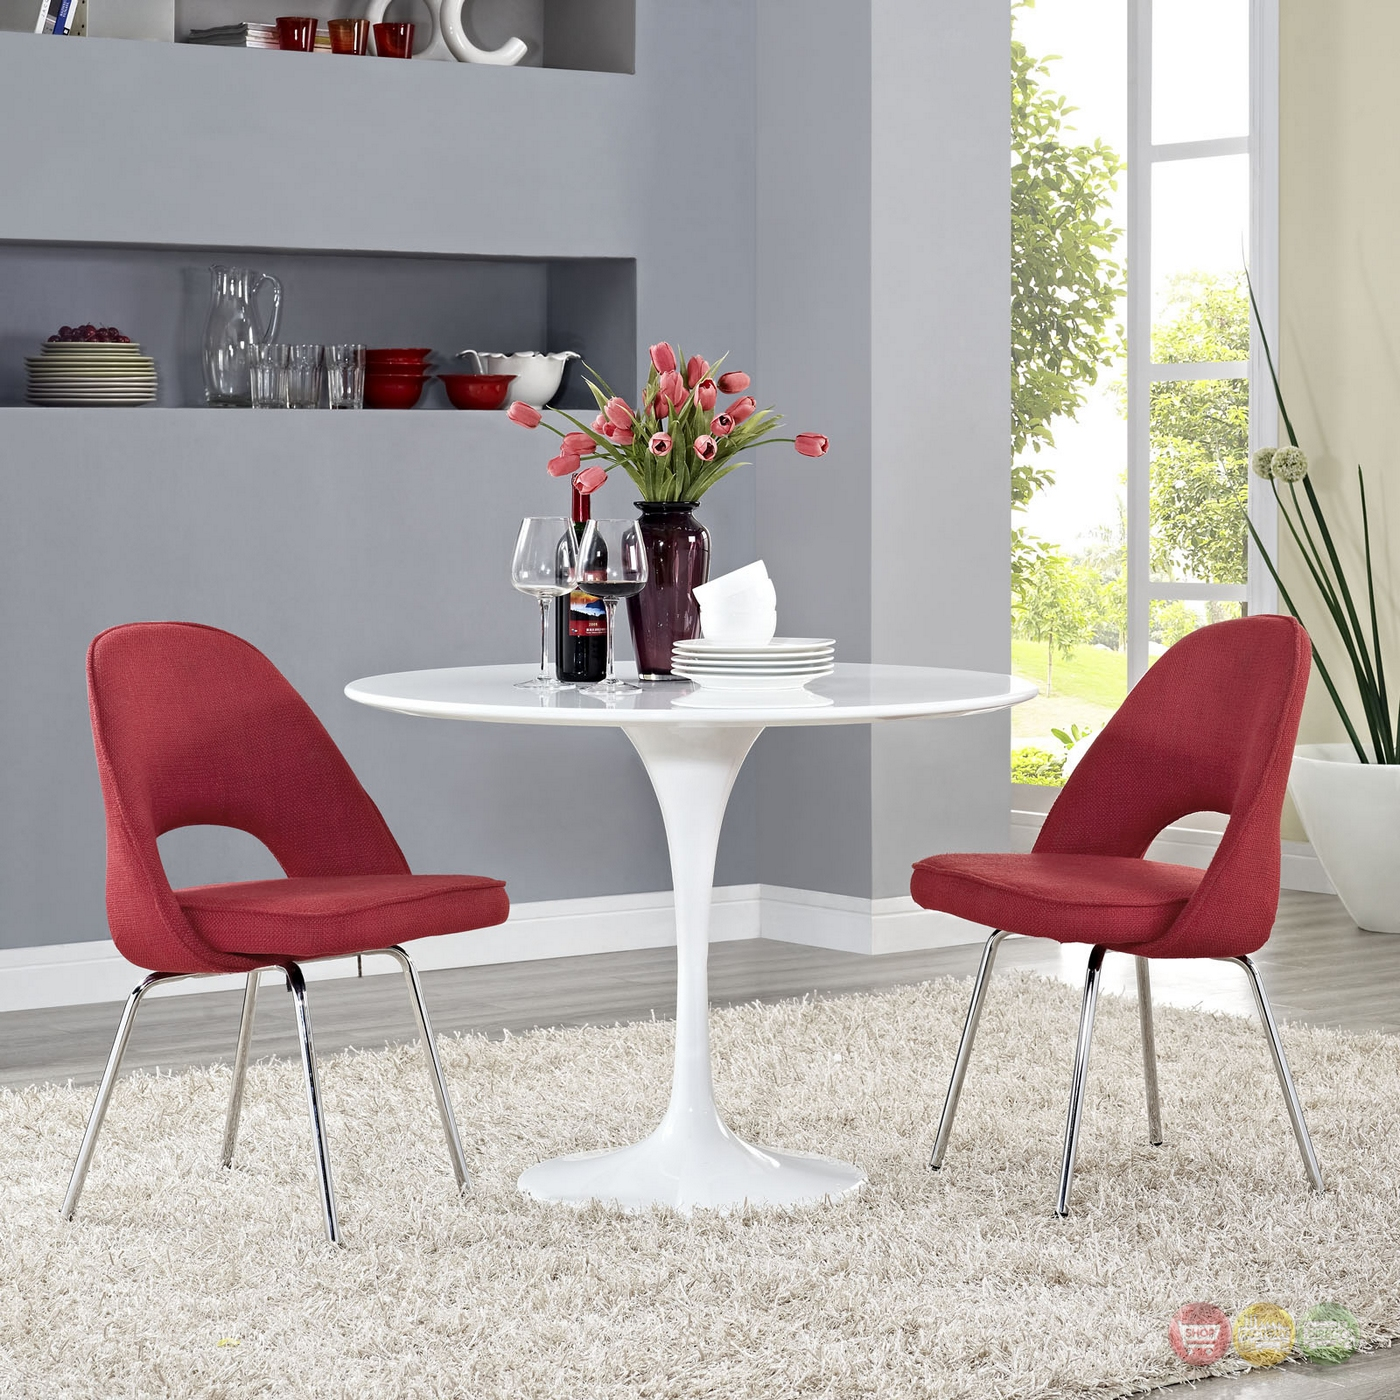 Set Of 2 Cordelia Modern Tweed Upholstered Dining Chairs  : set of 2 cordelia modern tweed upholstered dining chairs with chrome legs red 9 from shopfactorydirect.com size 1400 x 1400 jpeg 1038kB